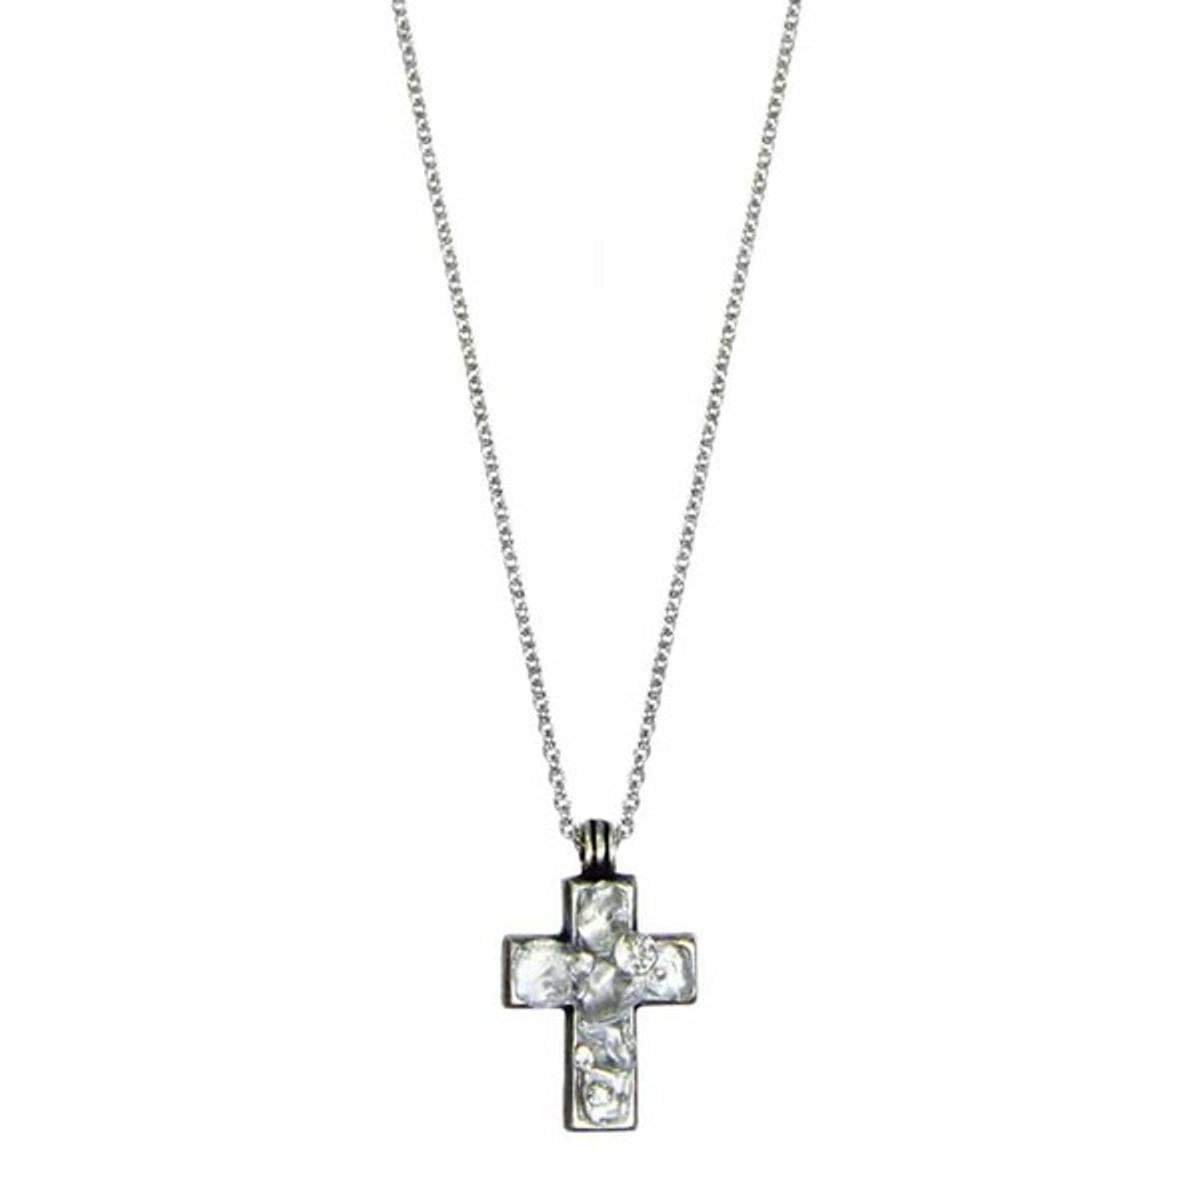 Michal Golan Small Silver Cross Necklace